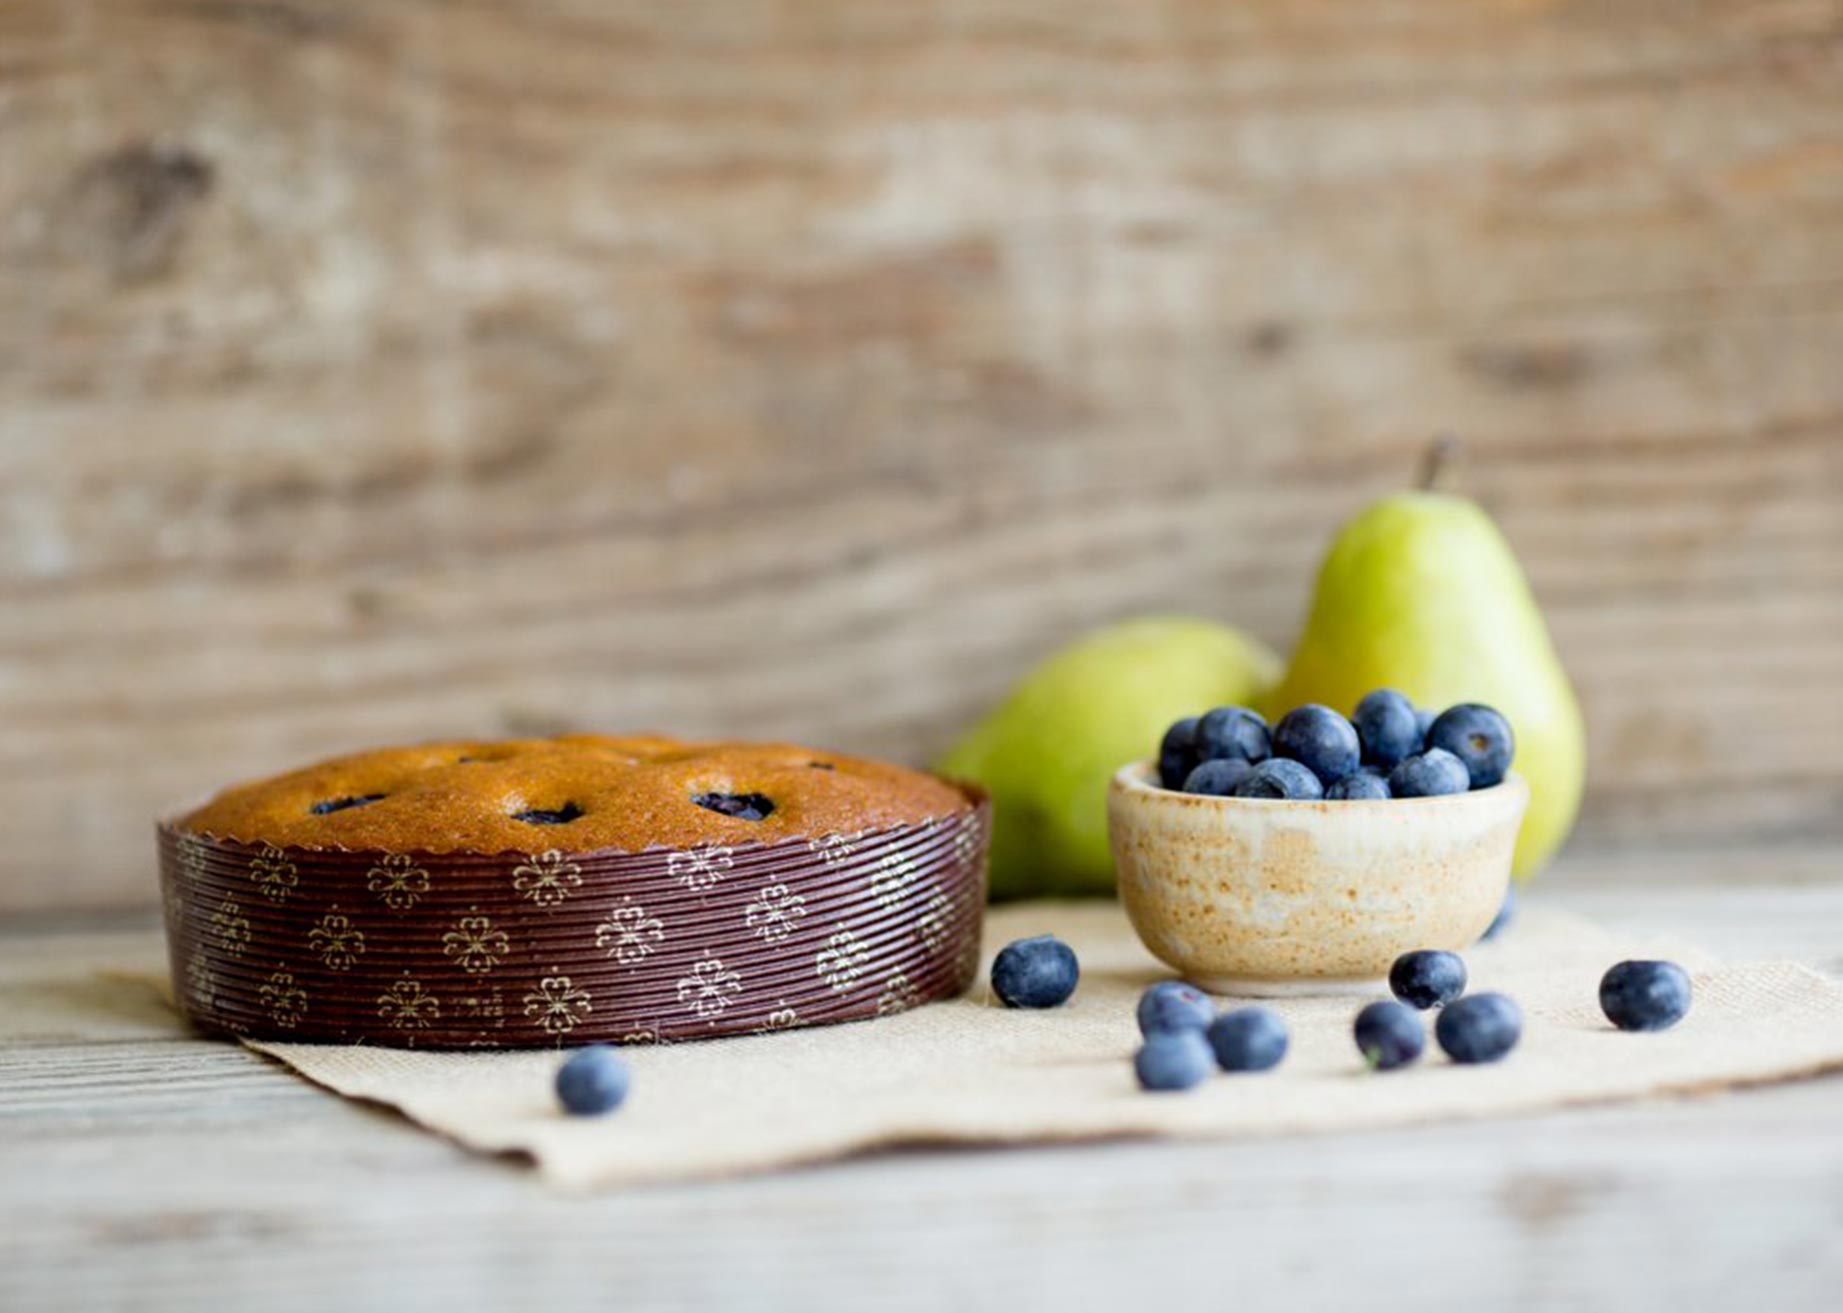 pear and blueberry cake in novacart MBB paper mold